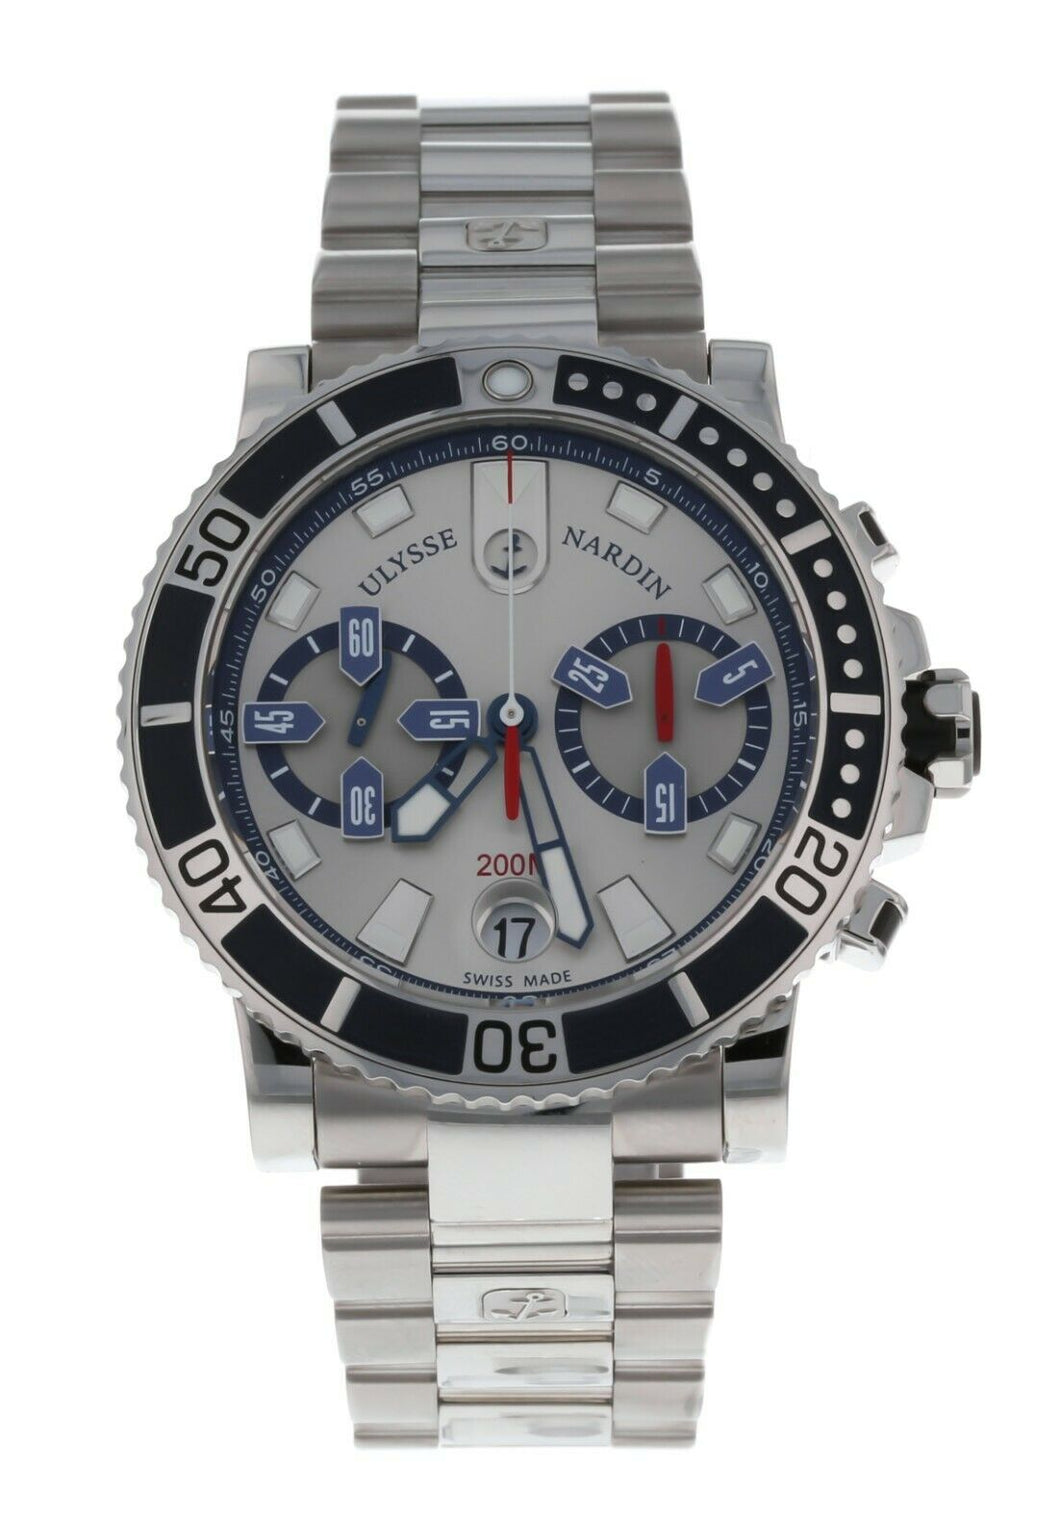 Ulysse Nardin Maxi Marine Diver Chronograph Automatic Men's Watch 8003-102-7/91